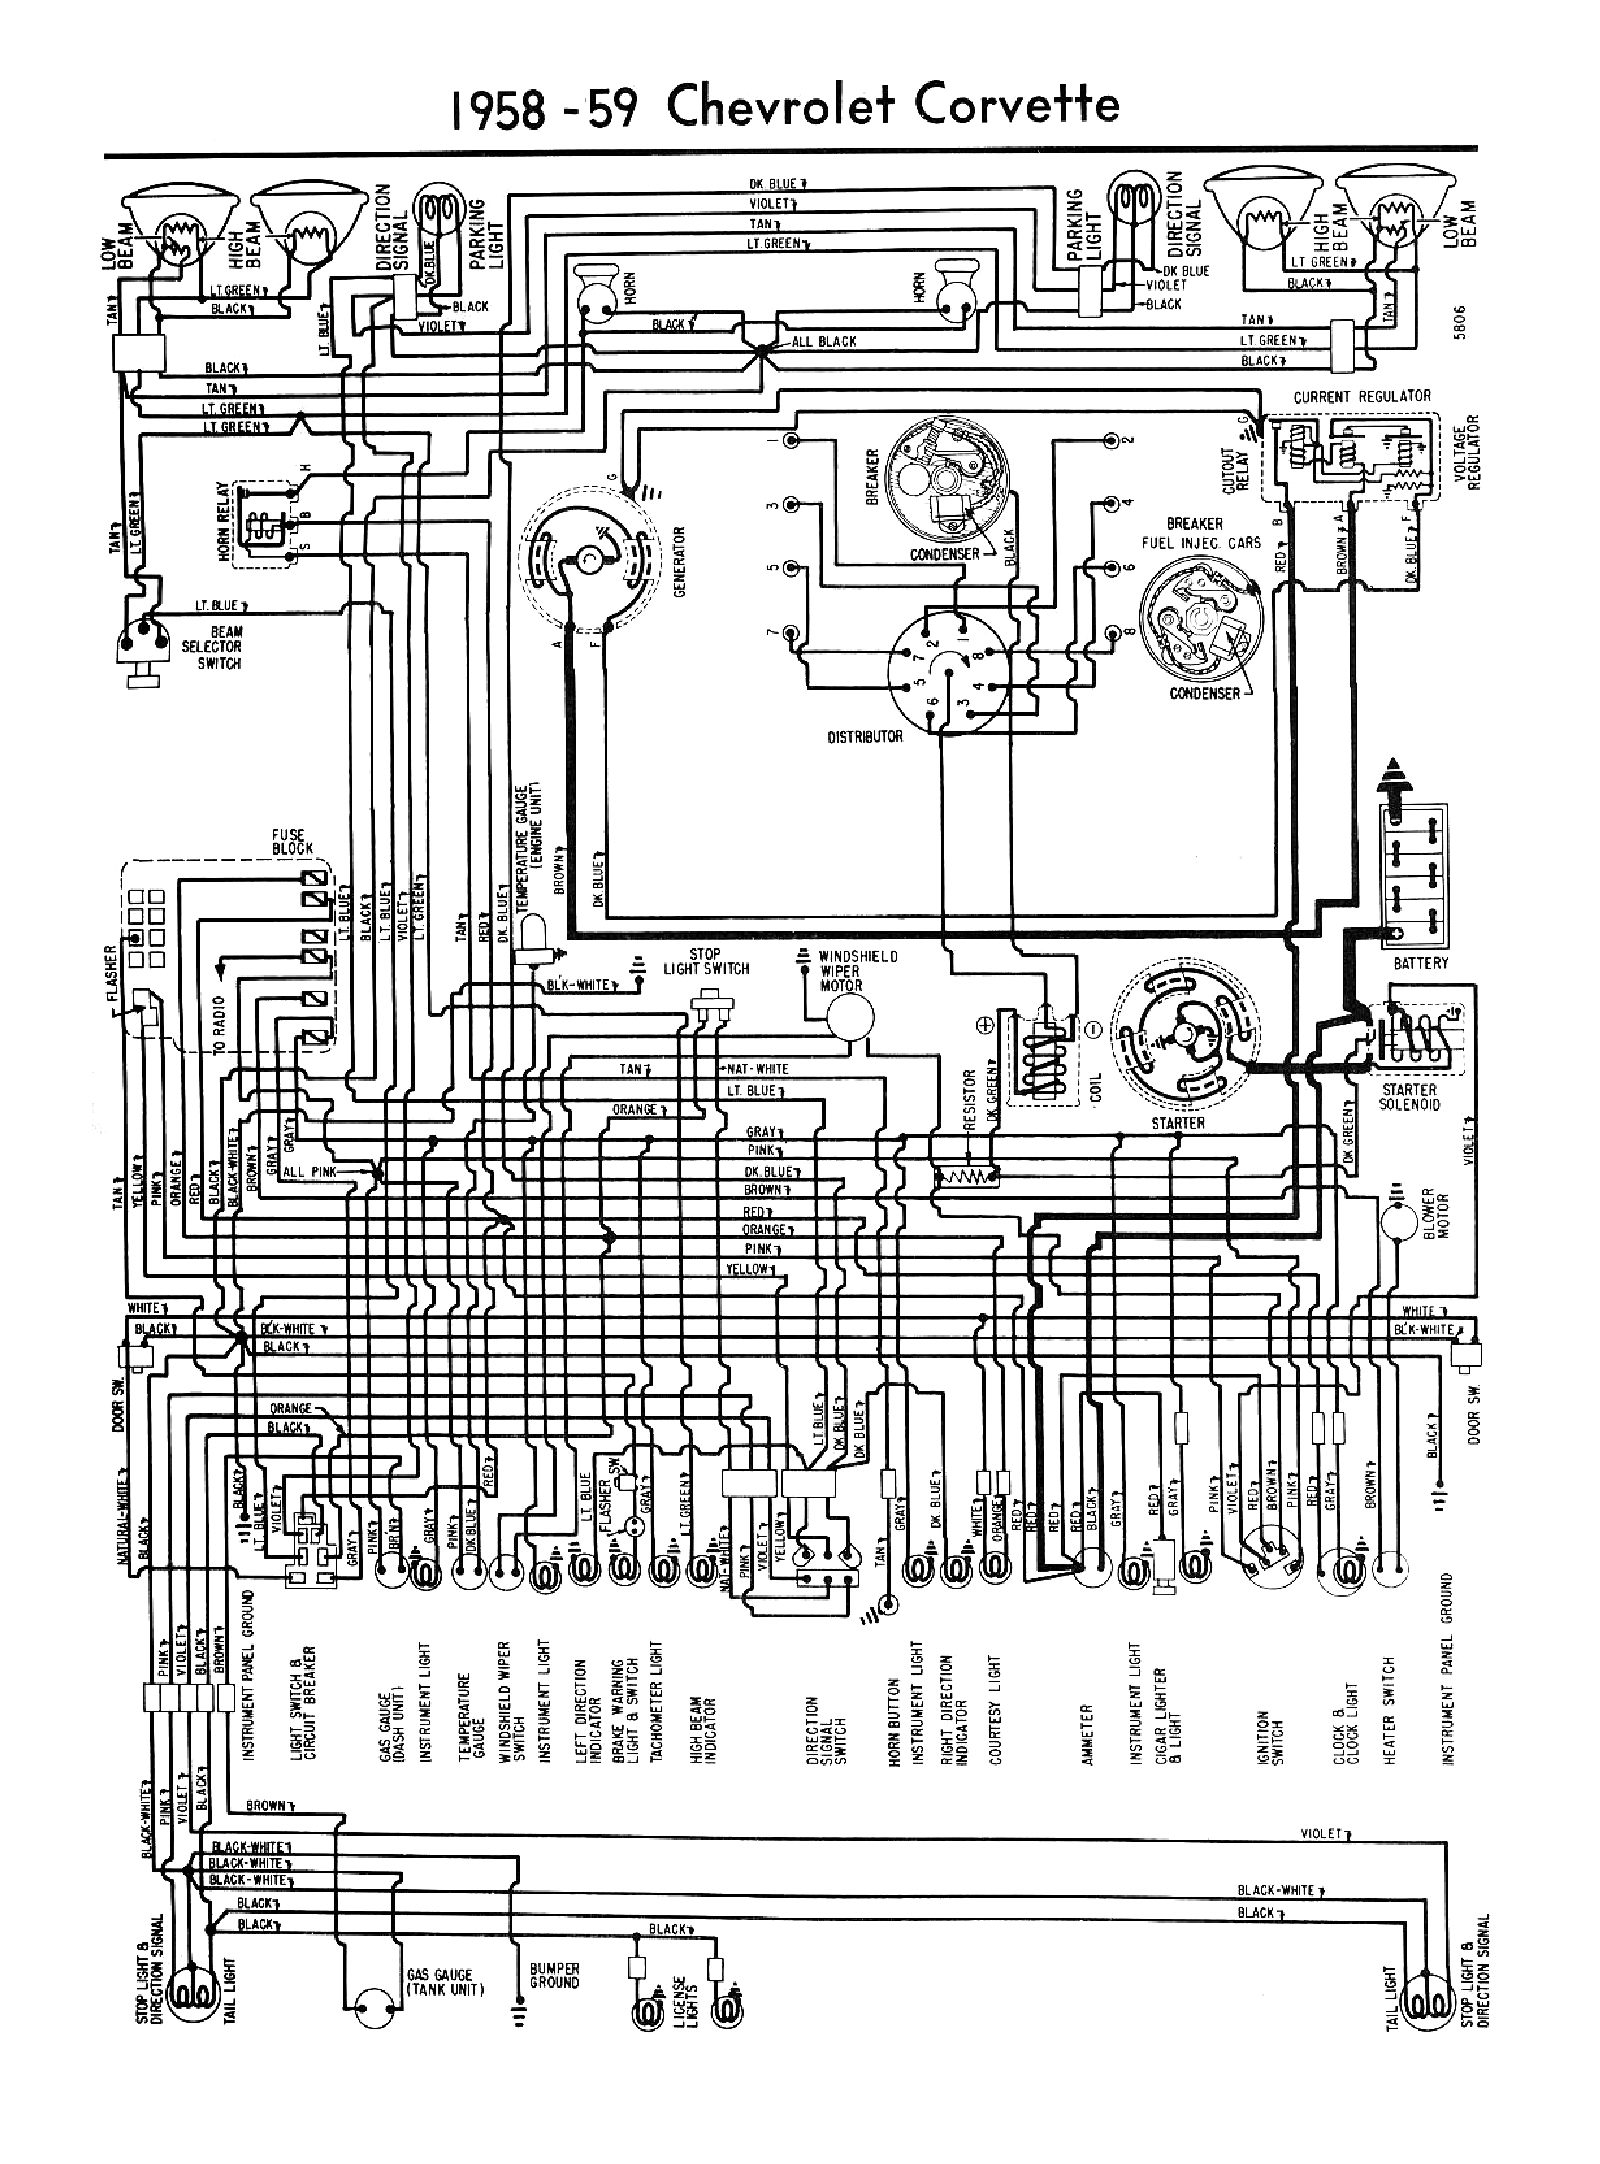 1958 Pontiac Wiring Diagram Schematics Diagrams 1972 Grand Prix Images Gallery